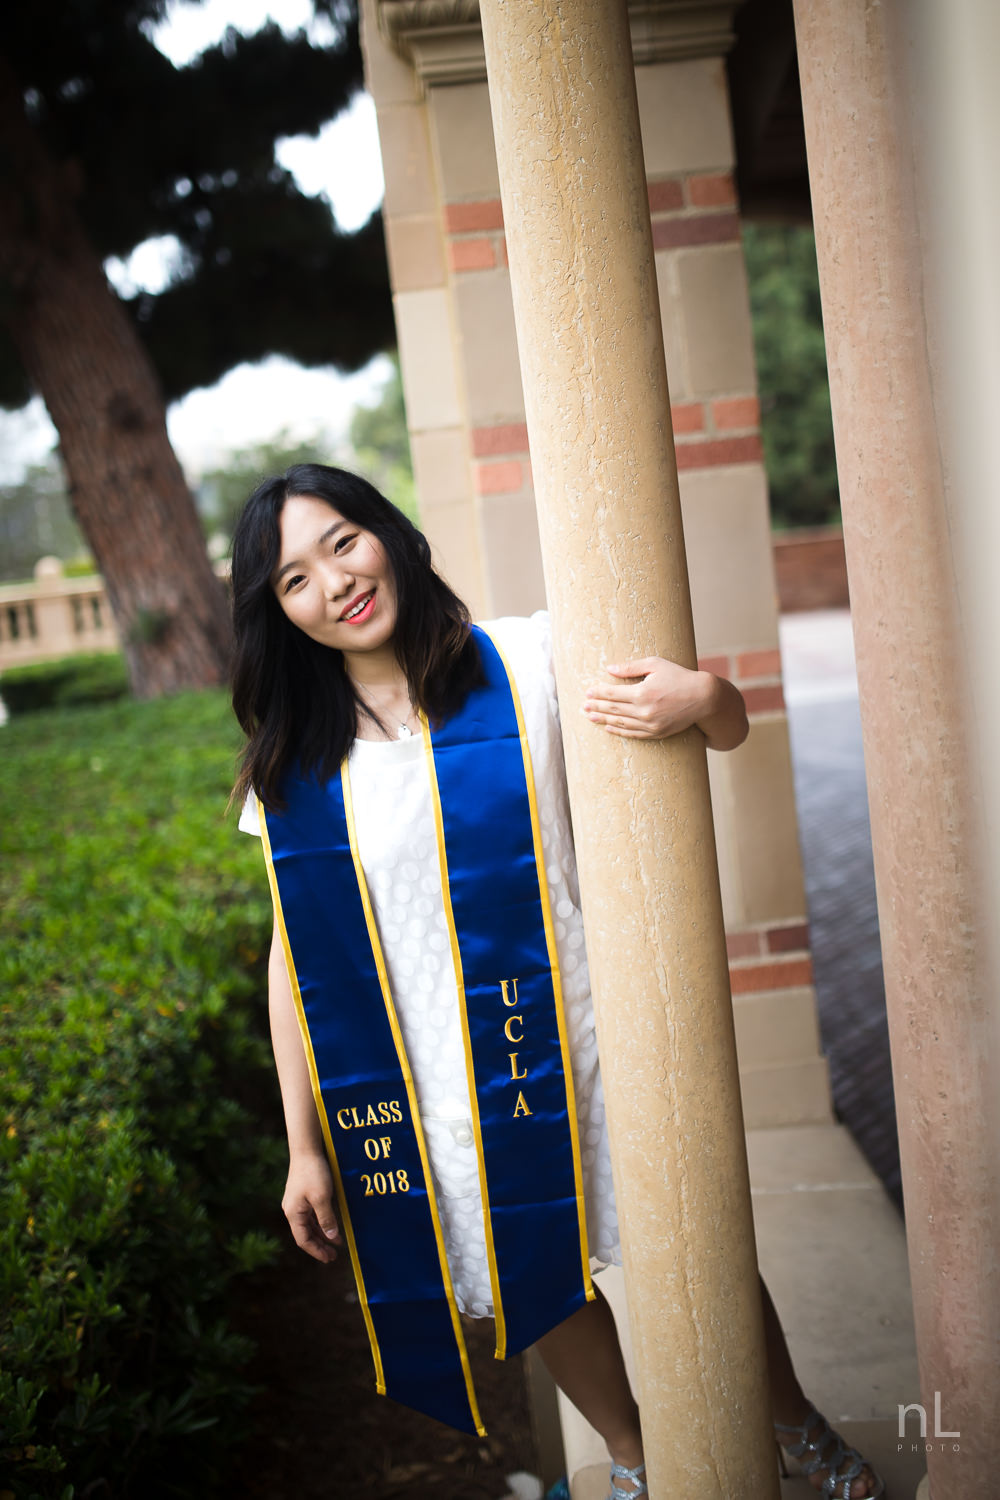 los-angeles-ucla-senior-graduation-portraits-0094.jpg